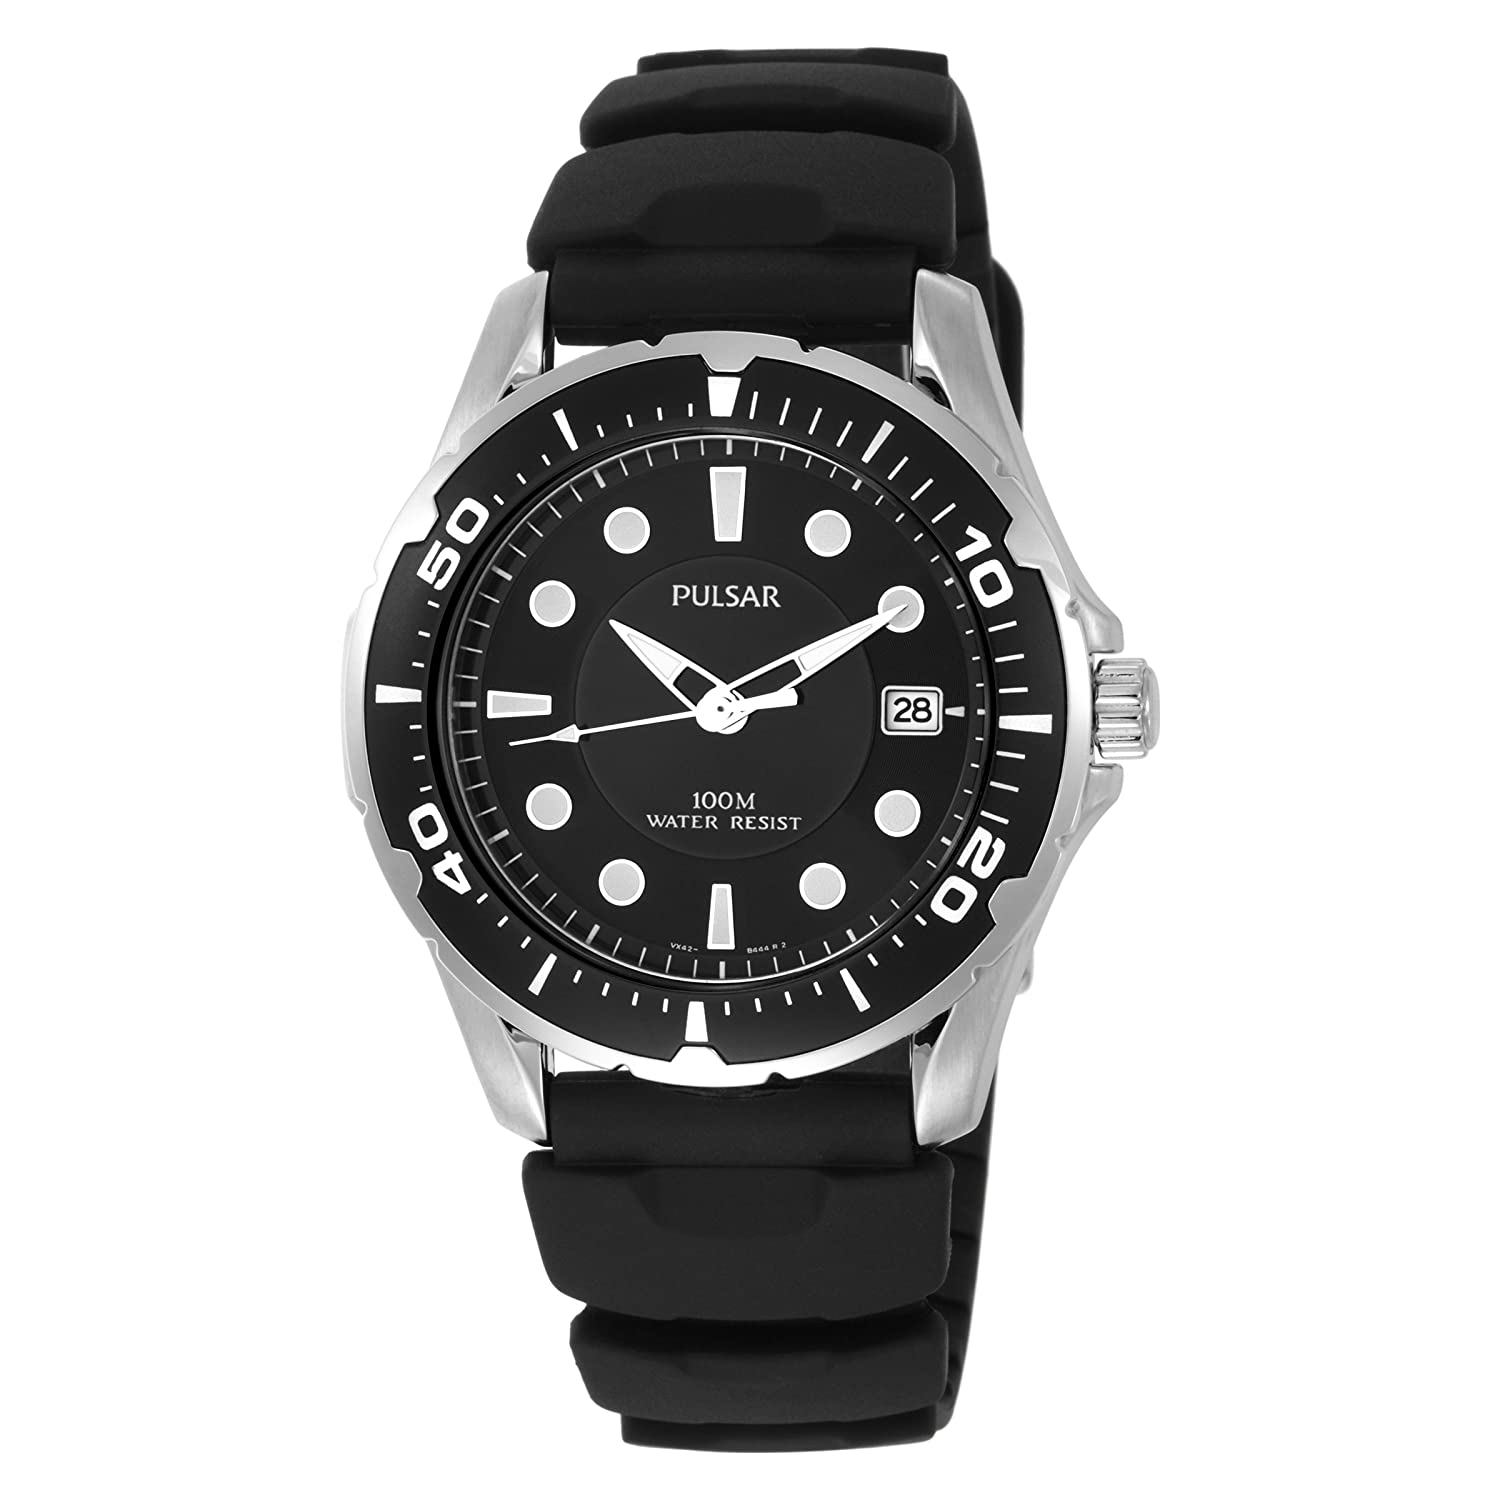 Pulsar Men&#8217;s PXH227 Sport Watch $28